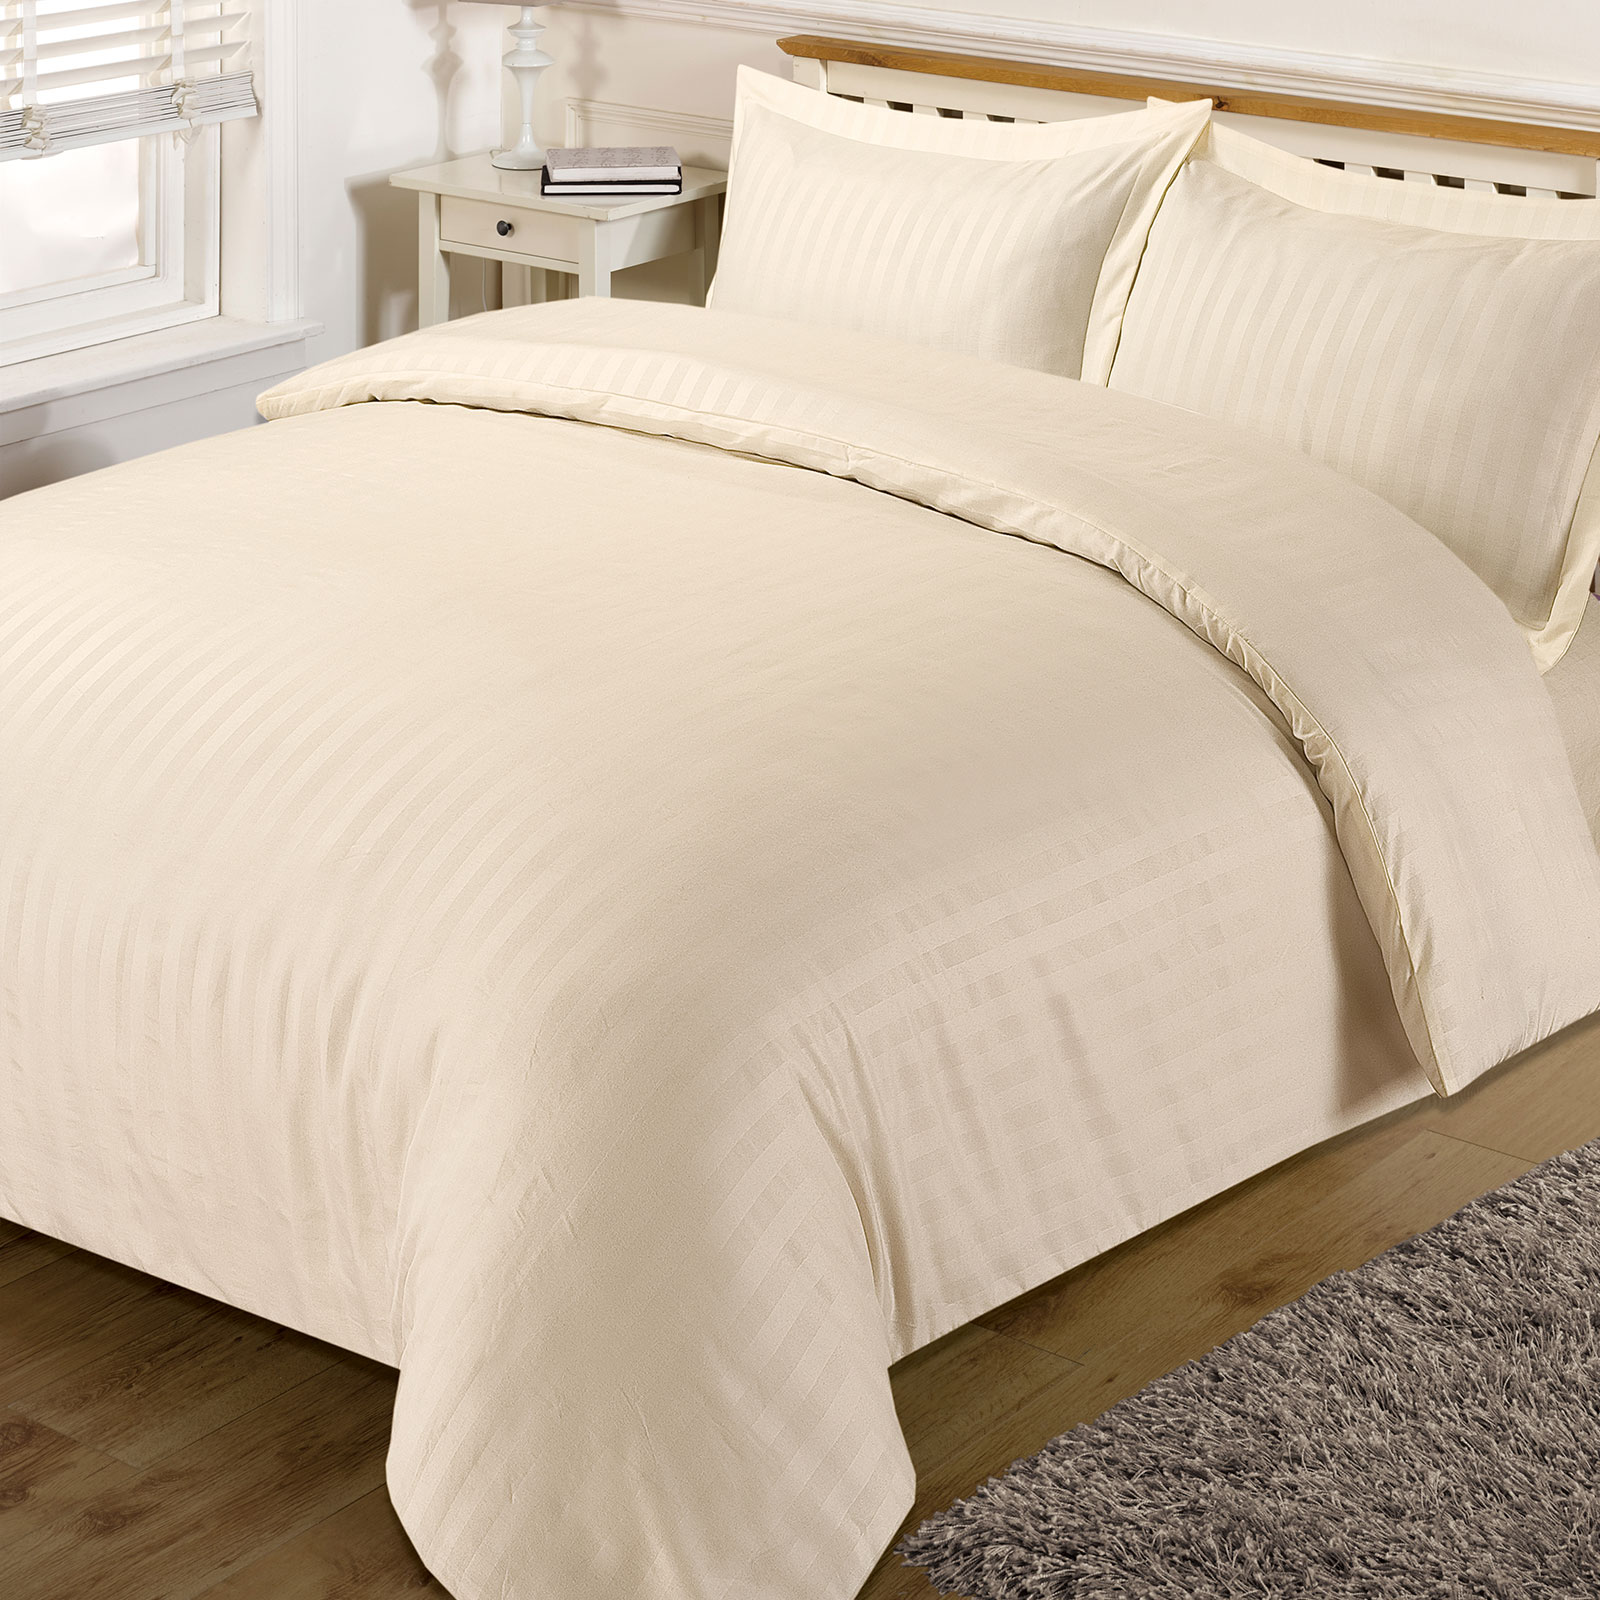 set pin light comforter master sonoma pinterest bedroom cream